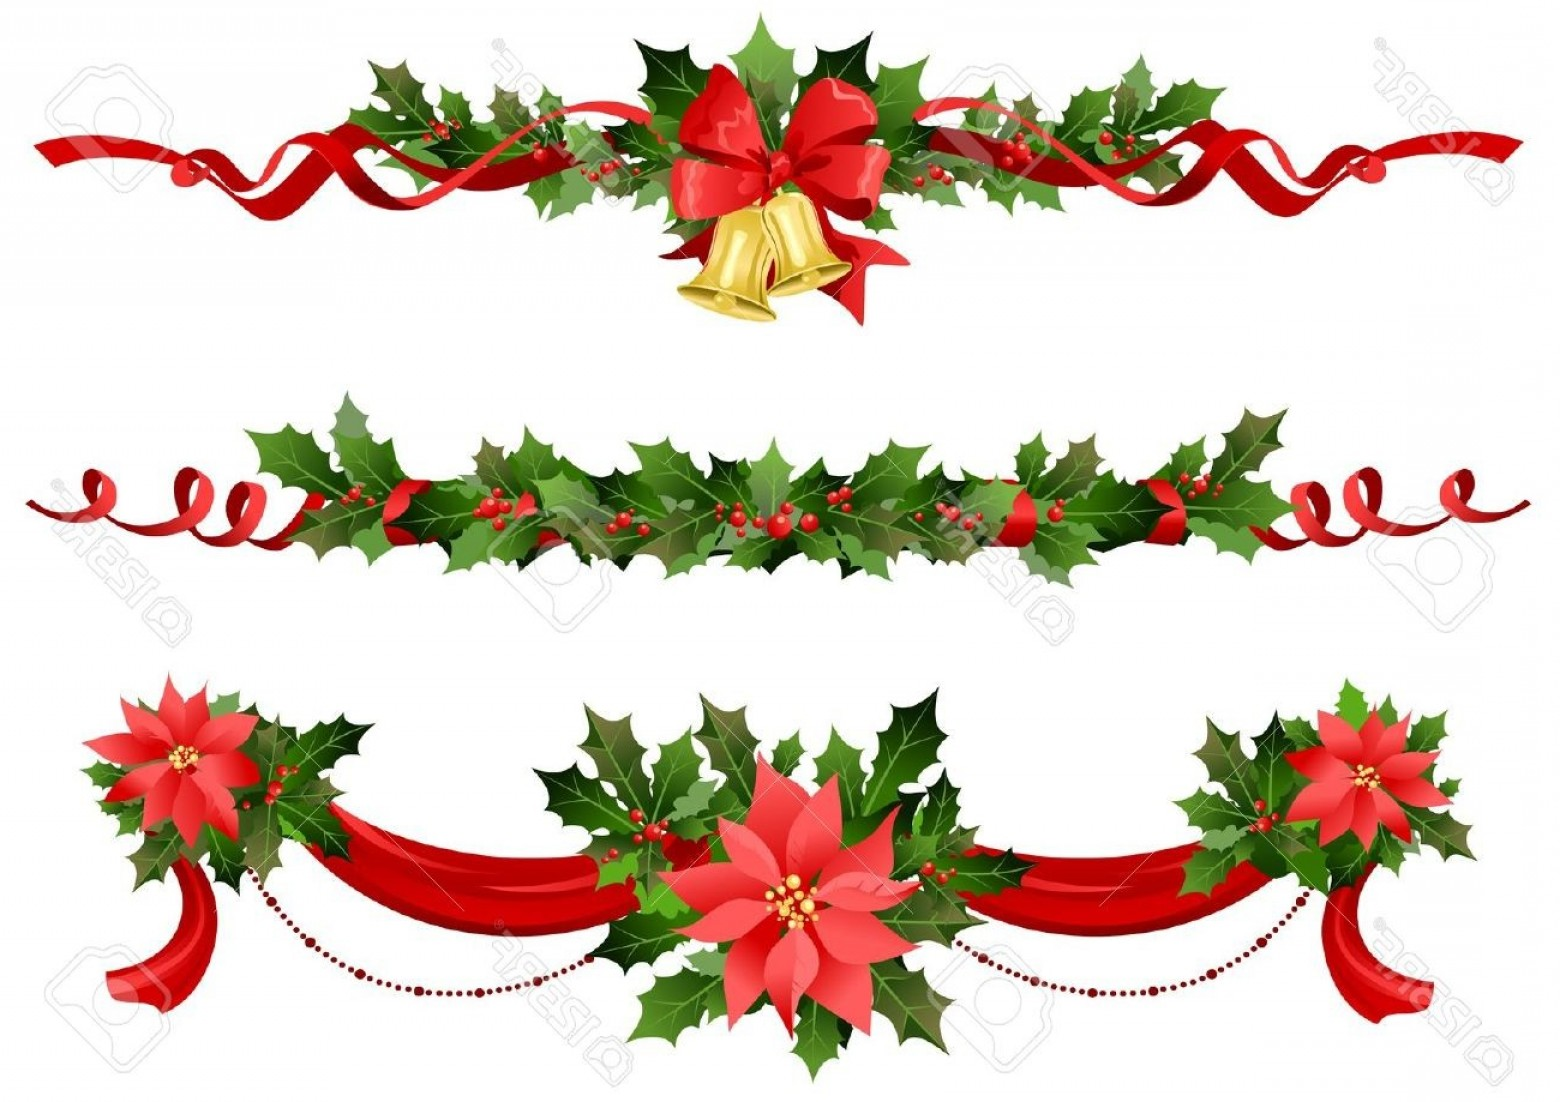 1560x1102 Christmas Border With Holly Berry Royalty Free Vector Image